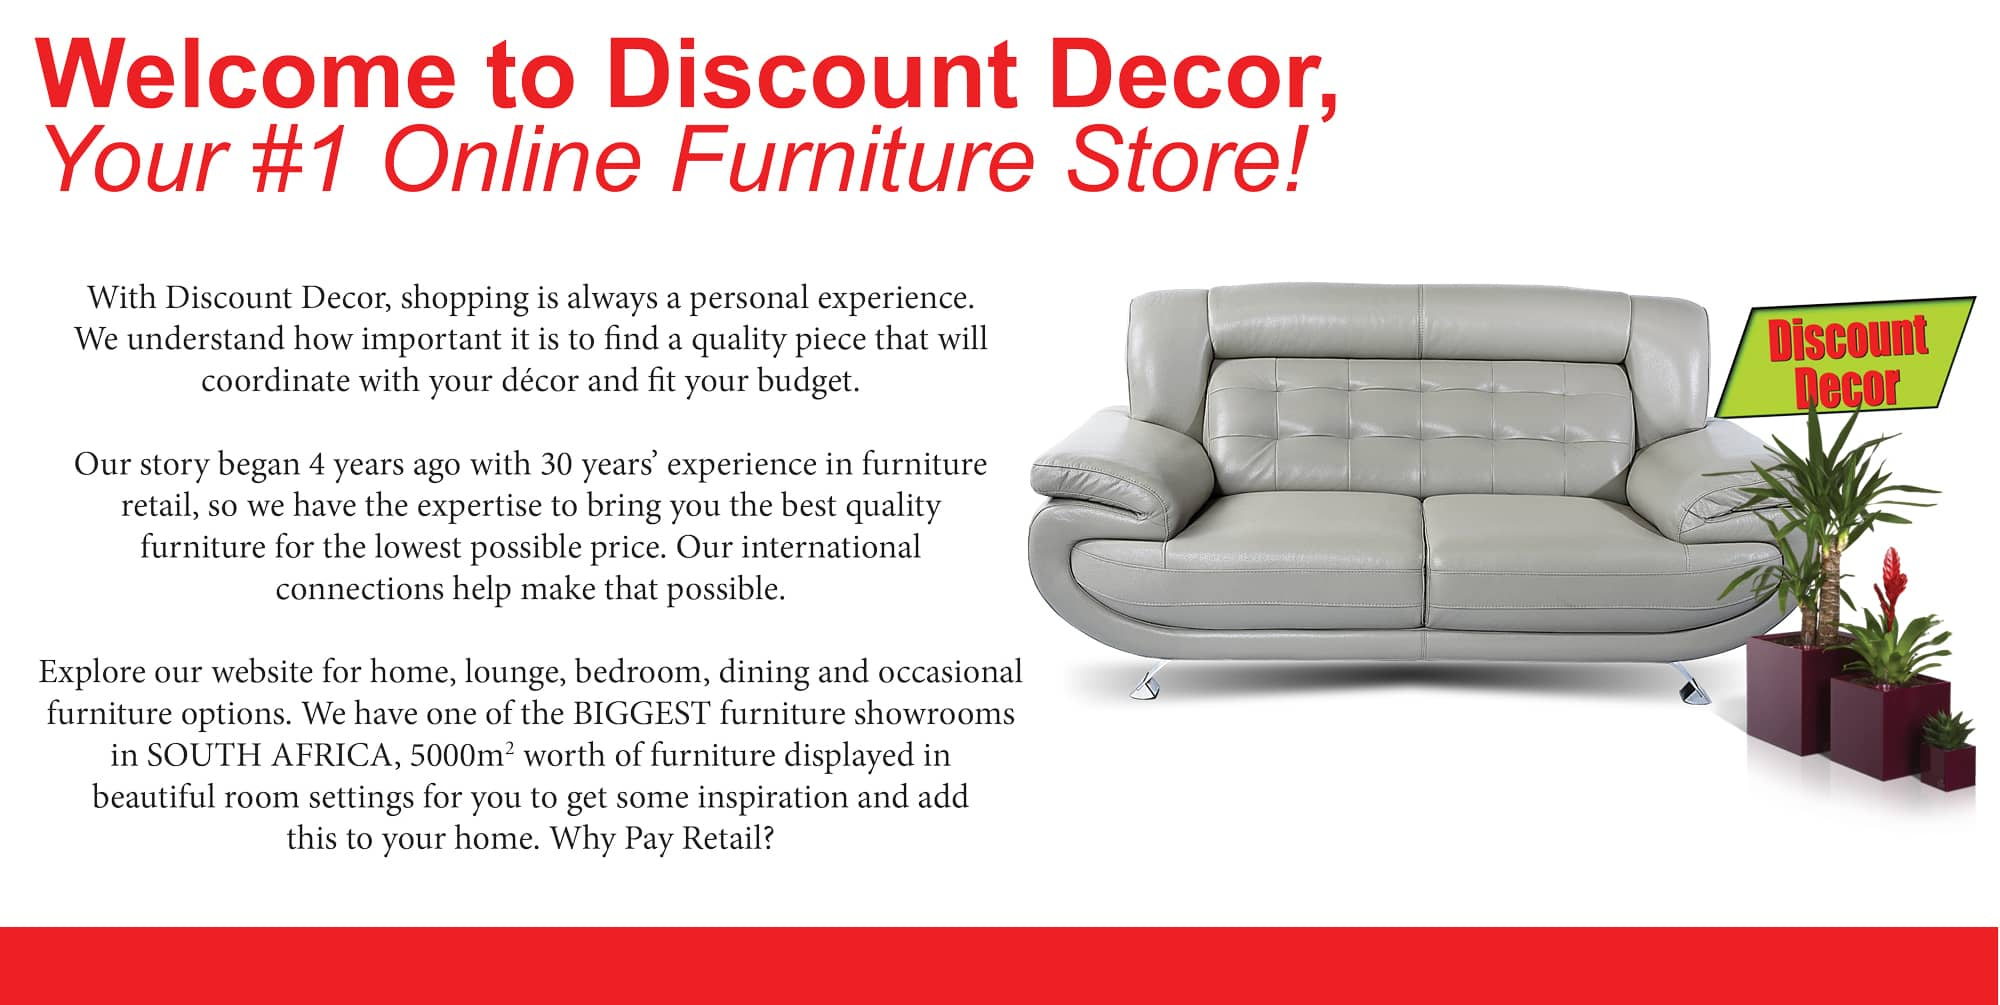 Discount decor cheap mattresses affordable lounge for Home decor outlet stores online